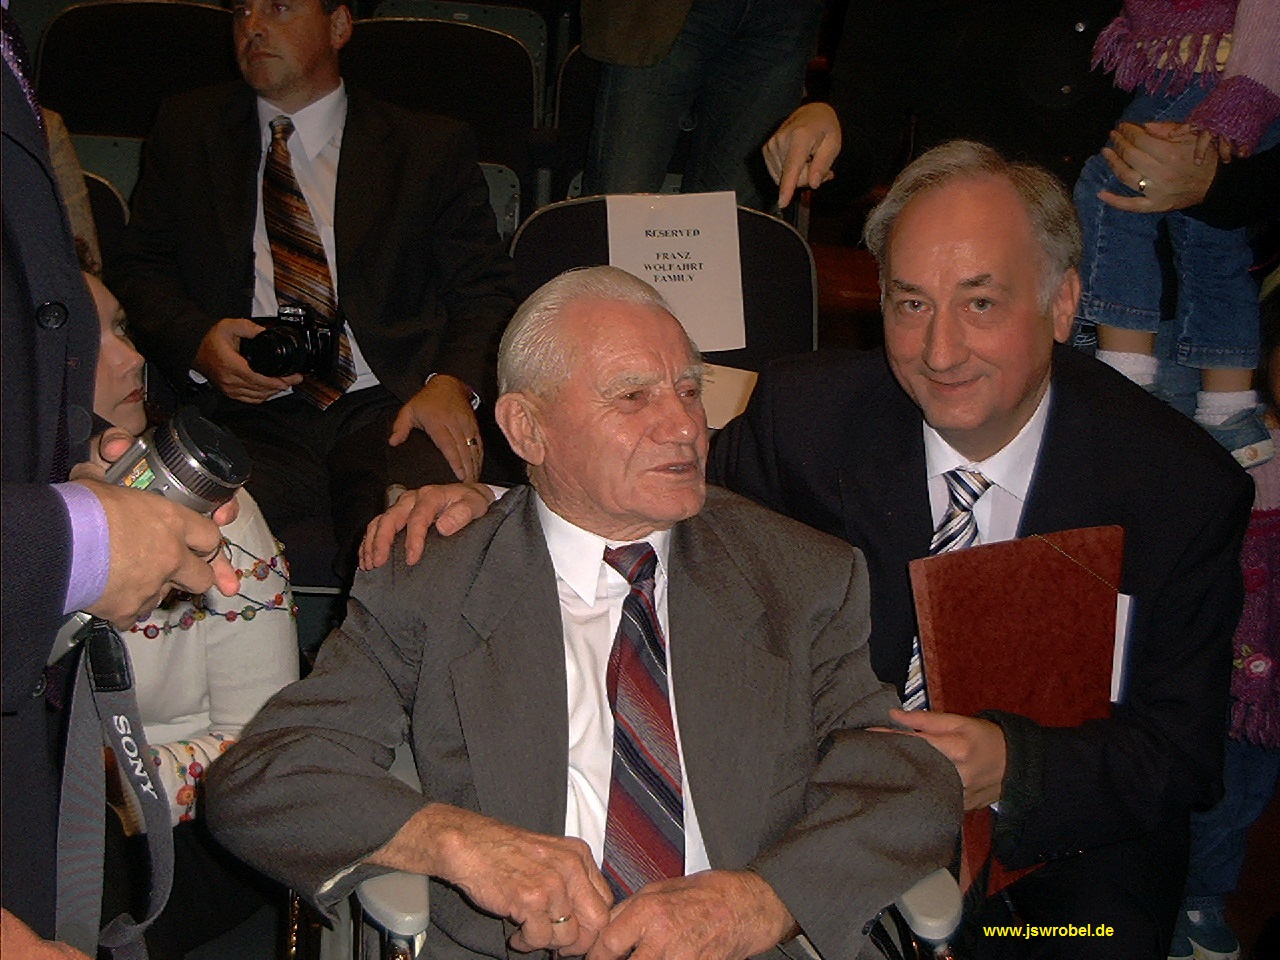 Franz Wohlfahrt and Johannes S. Wrobel at USHMM, October, 5 2006